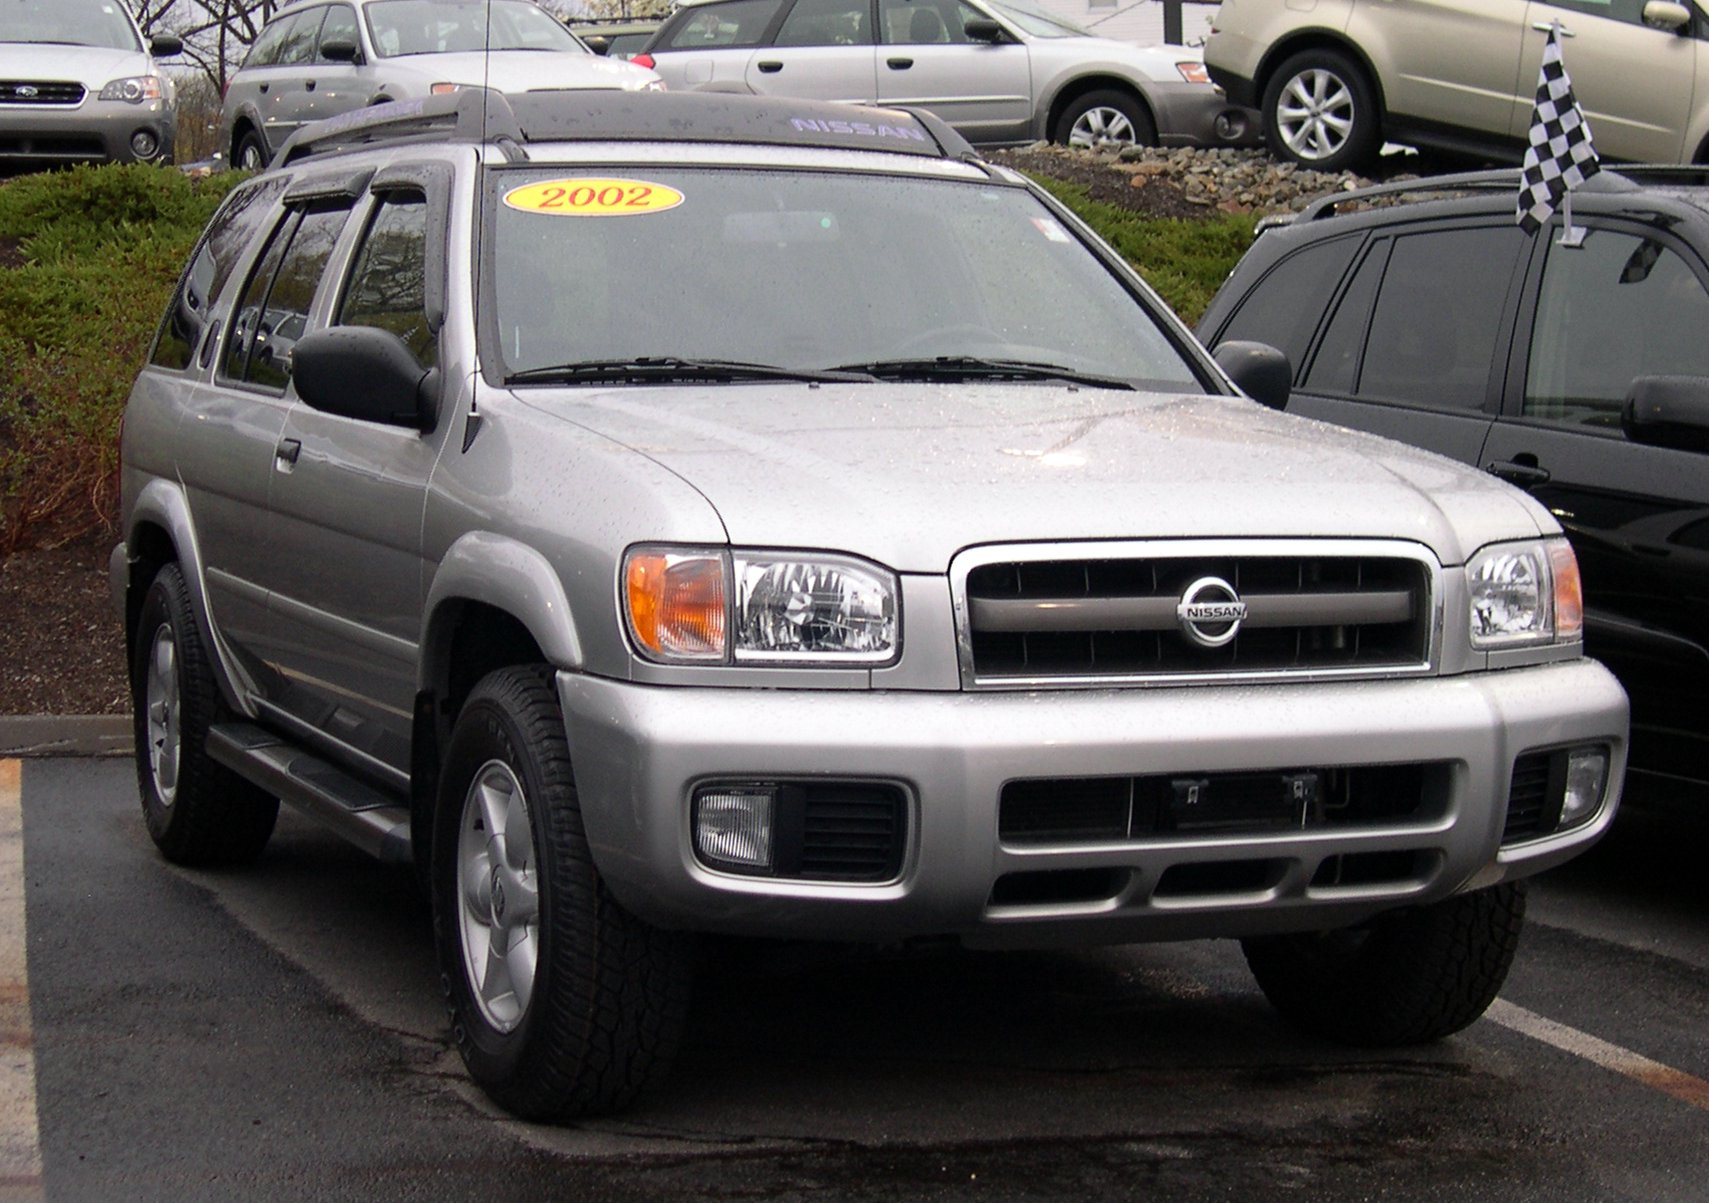 2002 Nissan Pathfinder - Information and photos - ZombieDrive